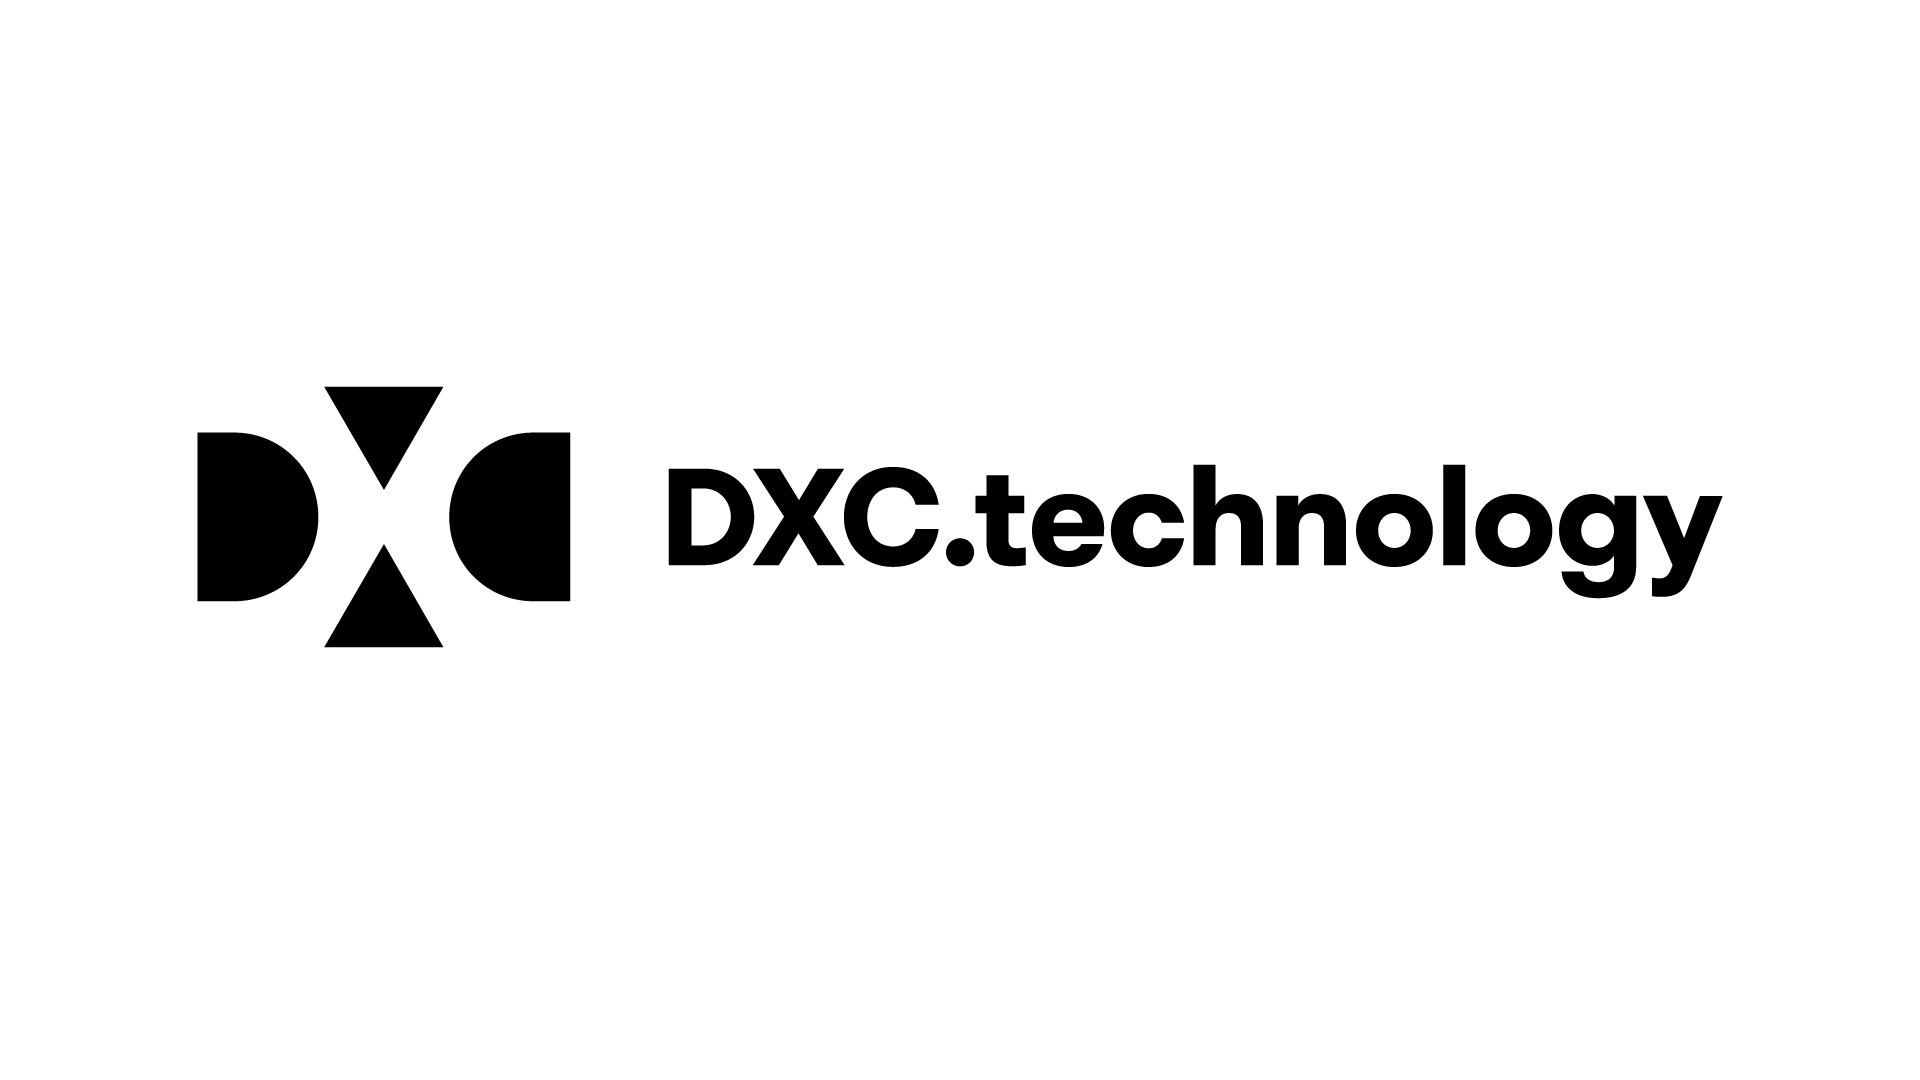 DXC Technology Co (NYSE: DXC) stock investors panic on its future